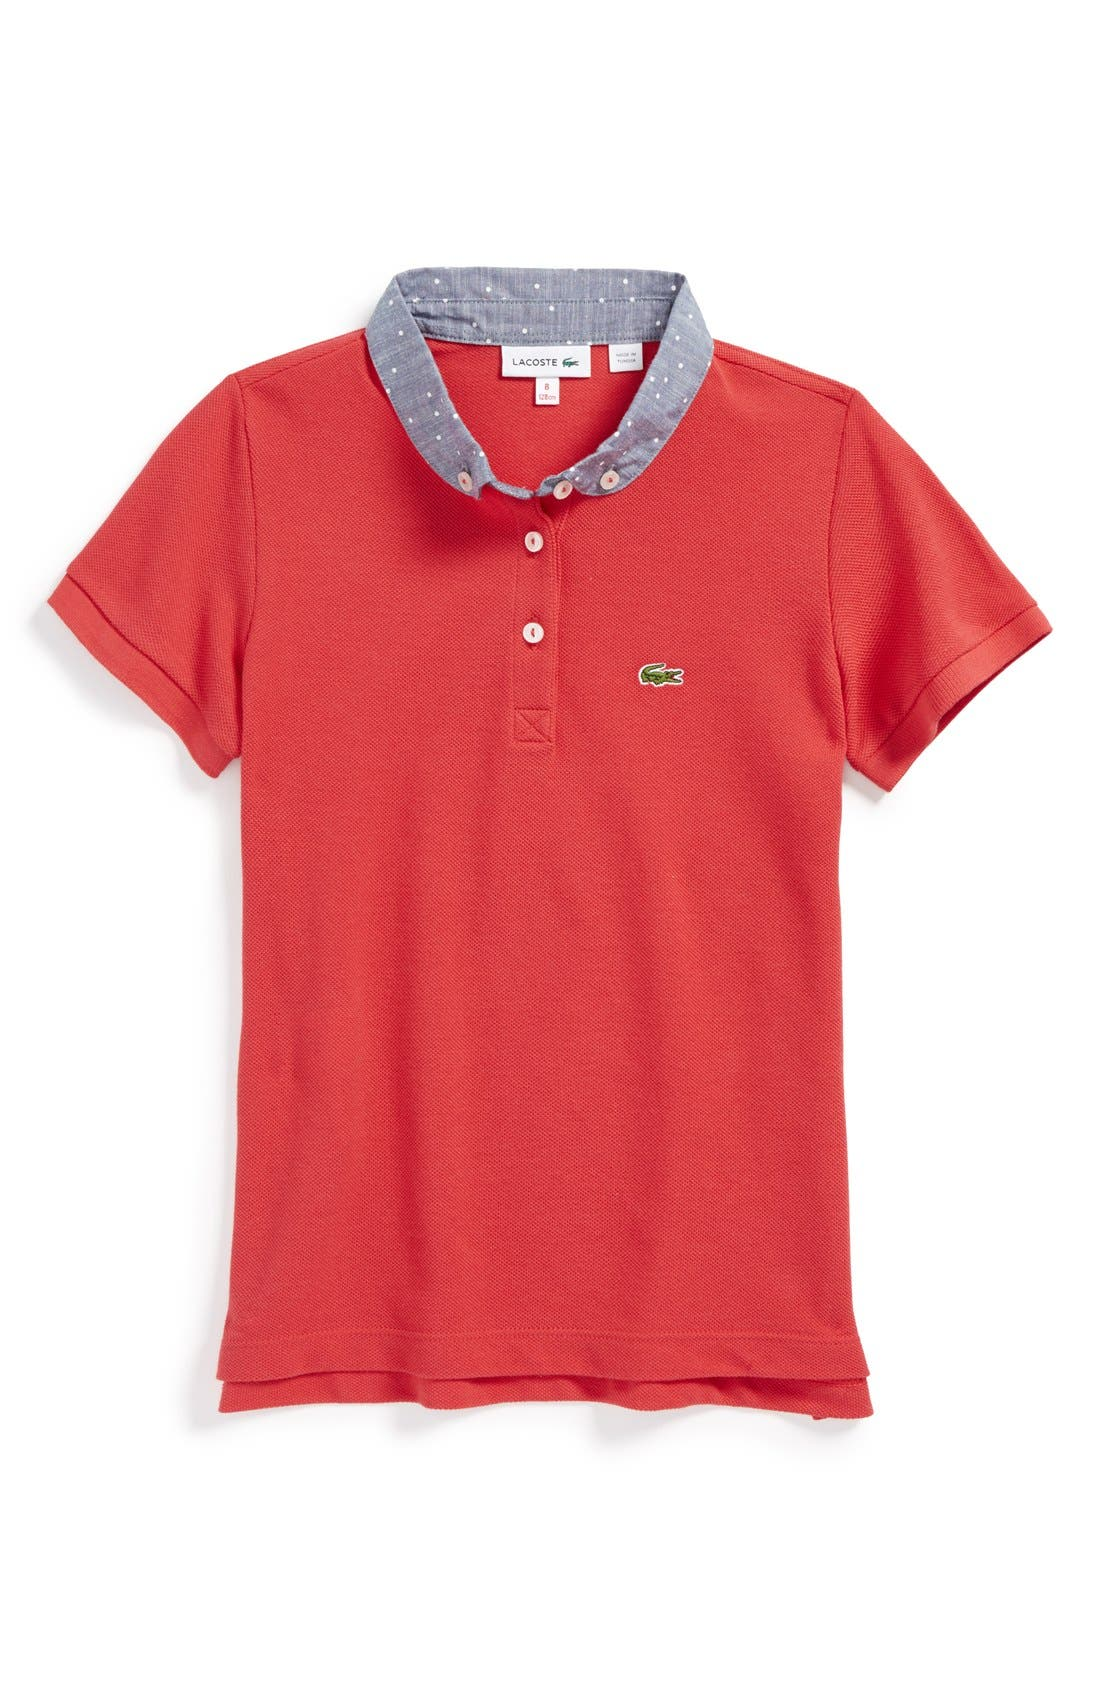 Main Image - Lacoste Contrast Collar Polo (Big Girls)